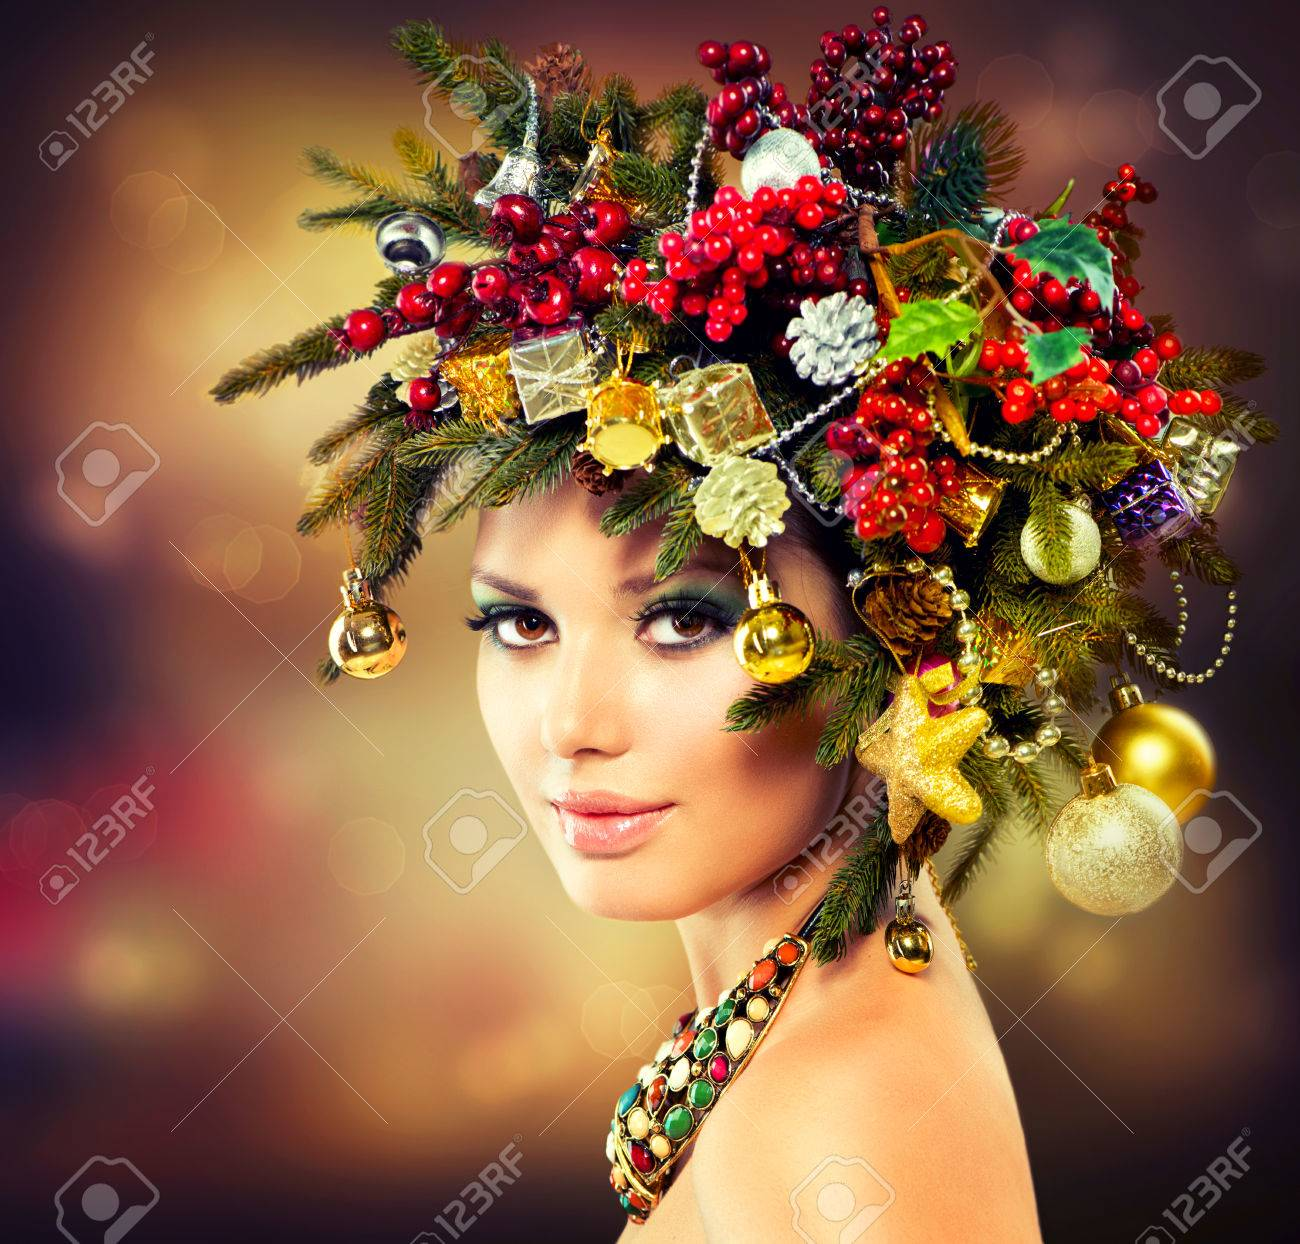 Beautiful Christmas Tree Holiday Hairstyle and Makeup Stock Photo - 23736087